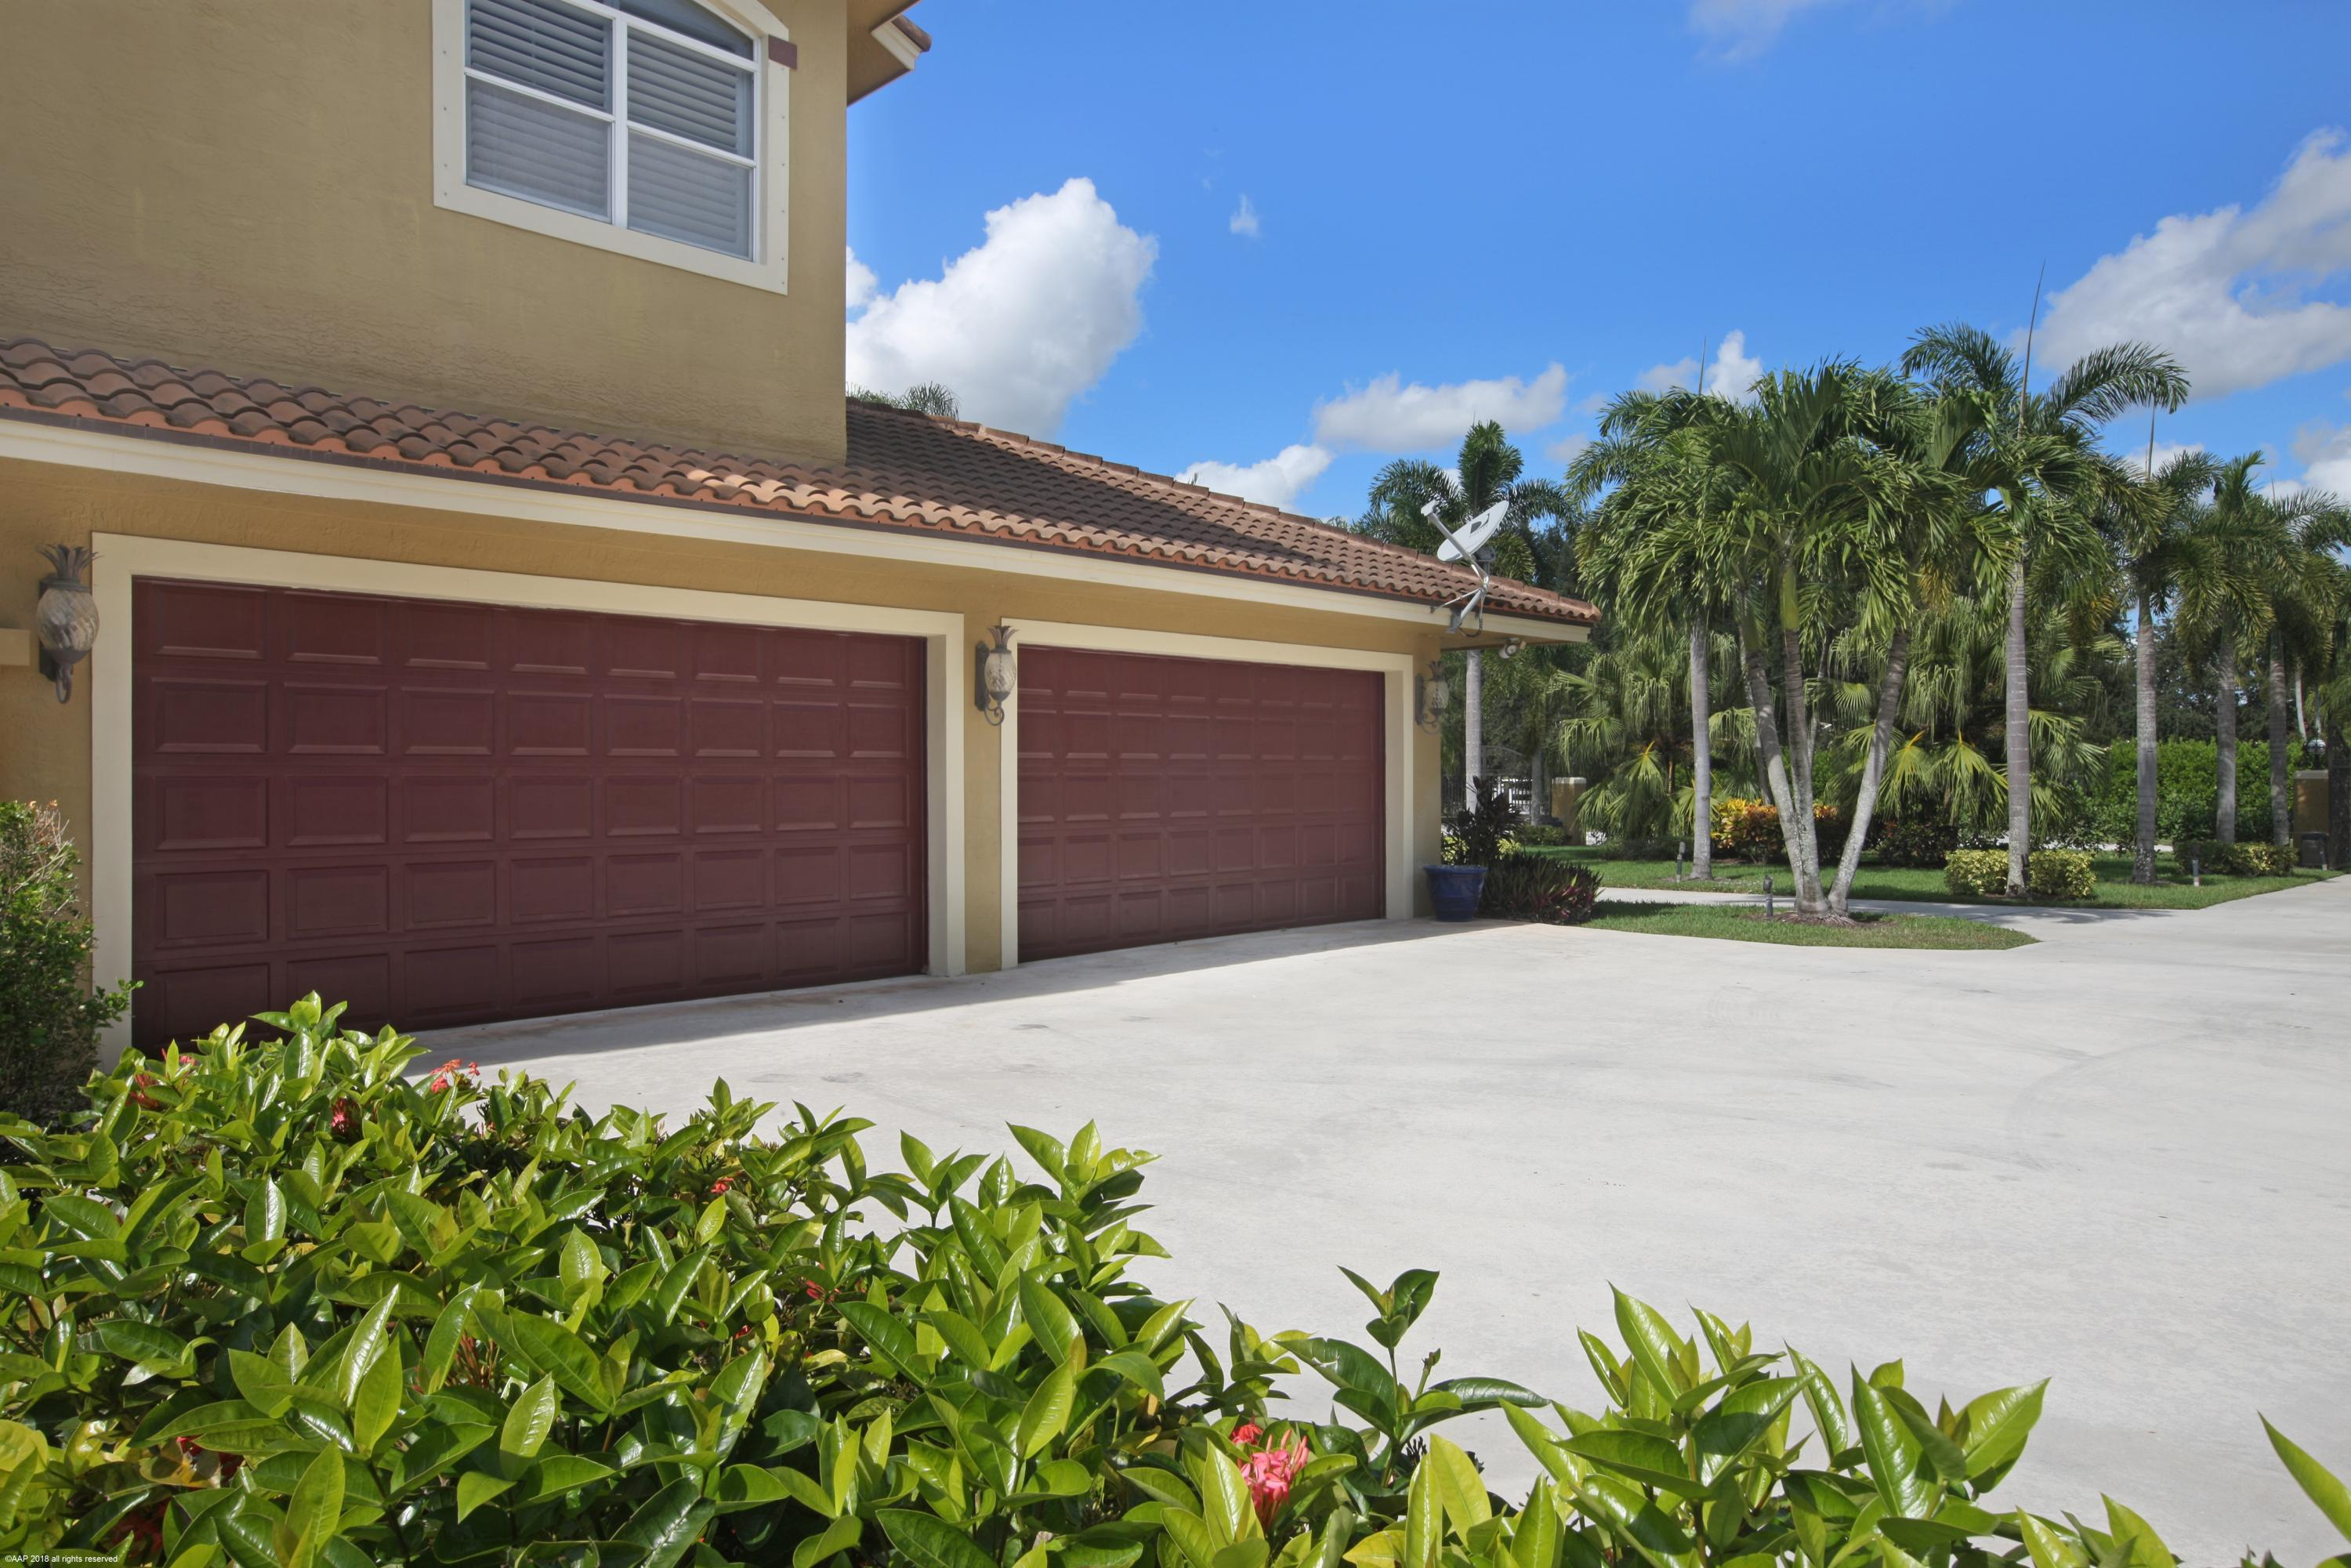 14829 Rolling Rock Place, Wellington, Florida 33414, 6 Bedrooms Bedrooms, ,4 BathroomsBathrooms,Single Family,For Rent,Rolling Rock,1,RX-10511569